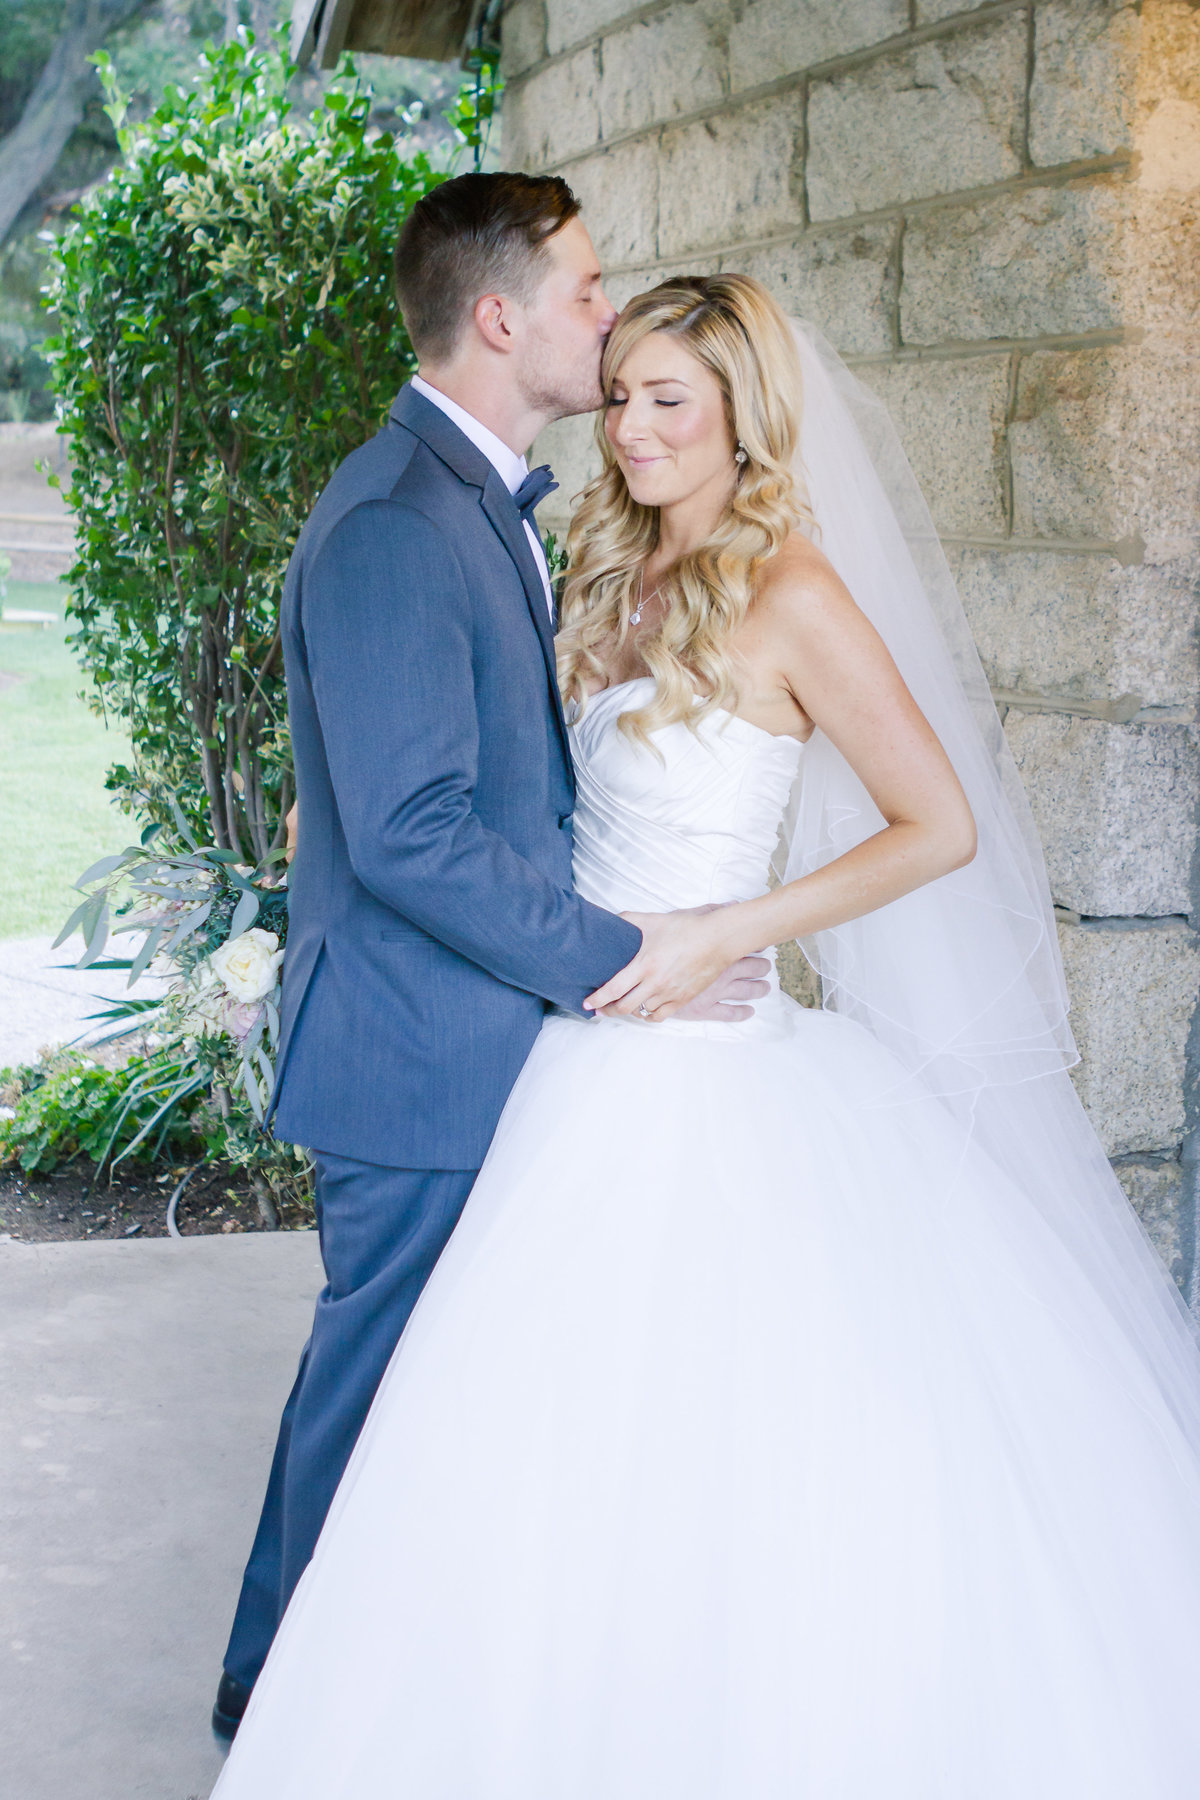 52-Temecula Wedding Pictures-Temecula Creek Inn_